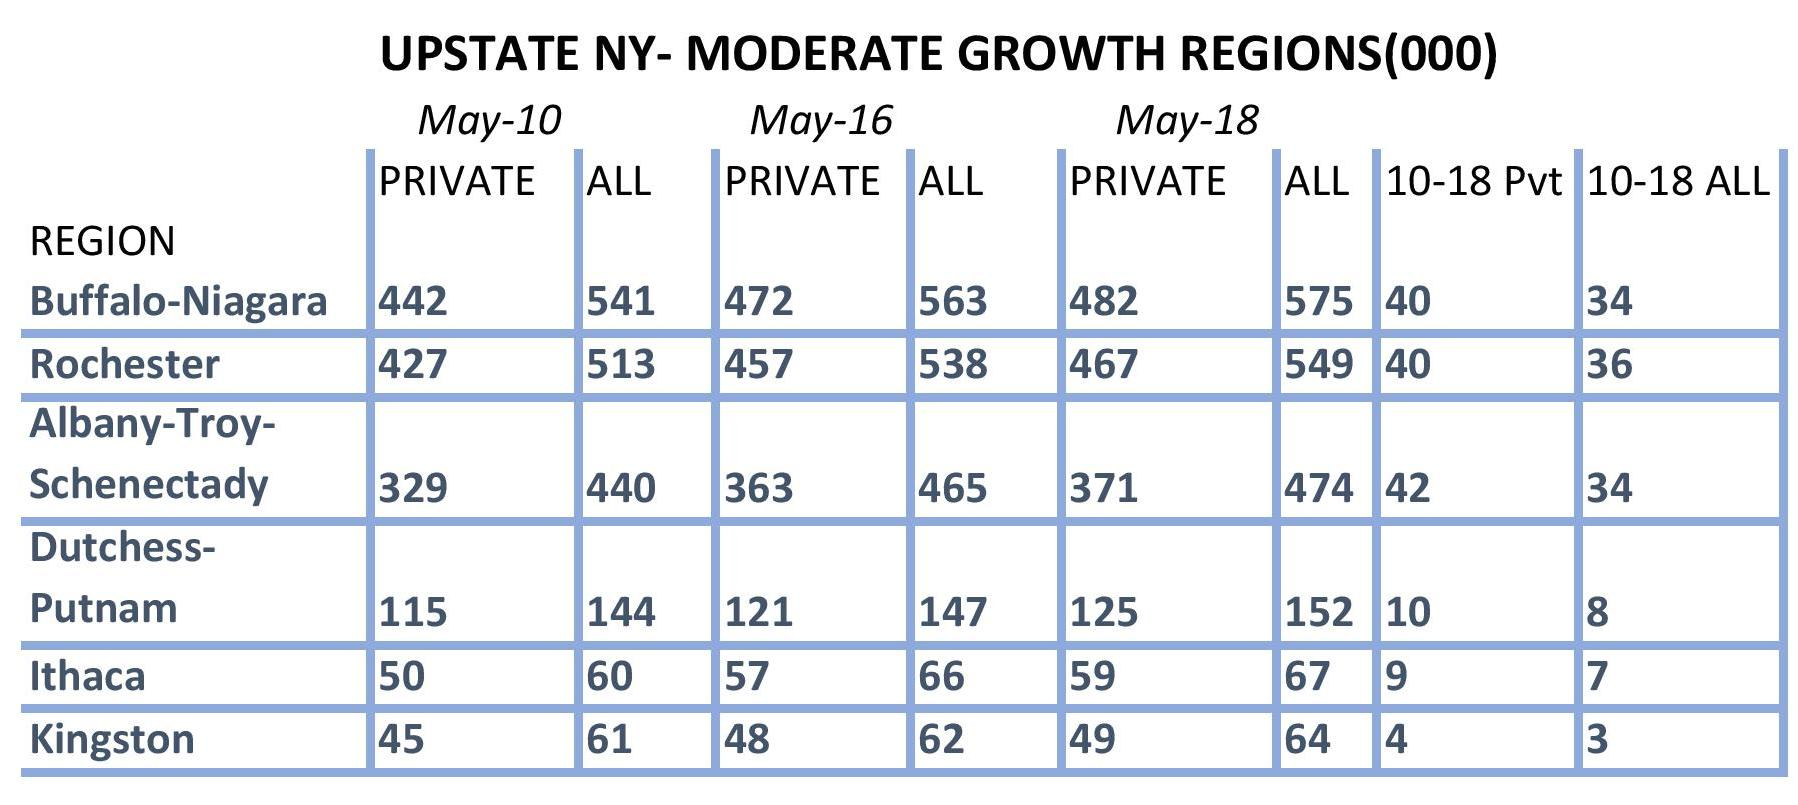 upstate new york growth moderate